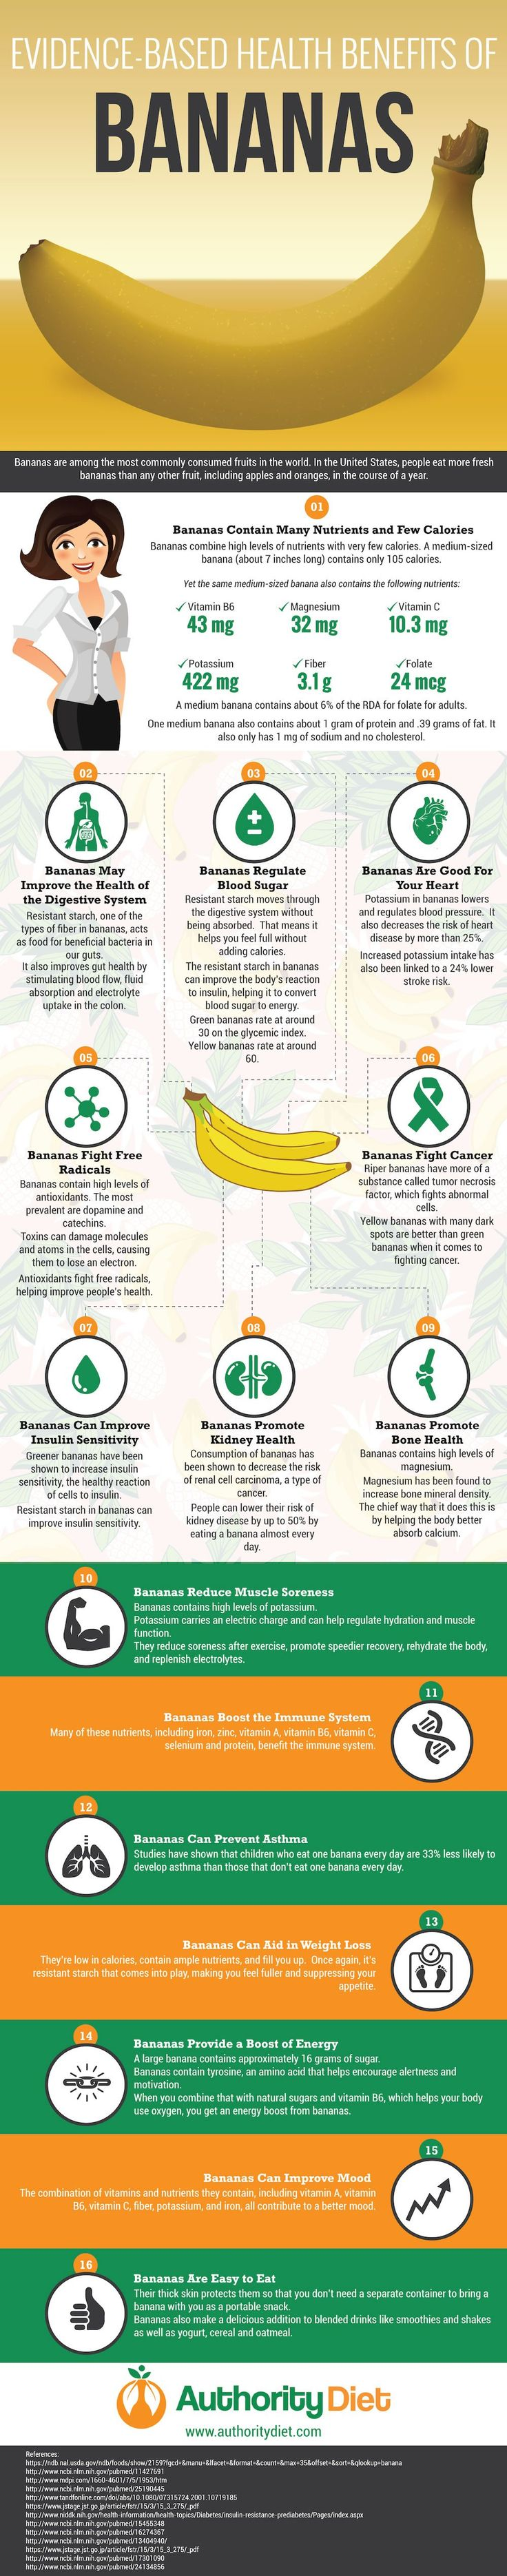 Evidence-Based Health Benefits Of Bananas #Infographic #Banana #Health